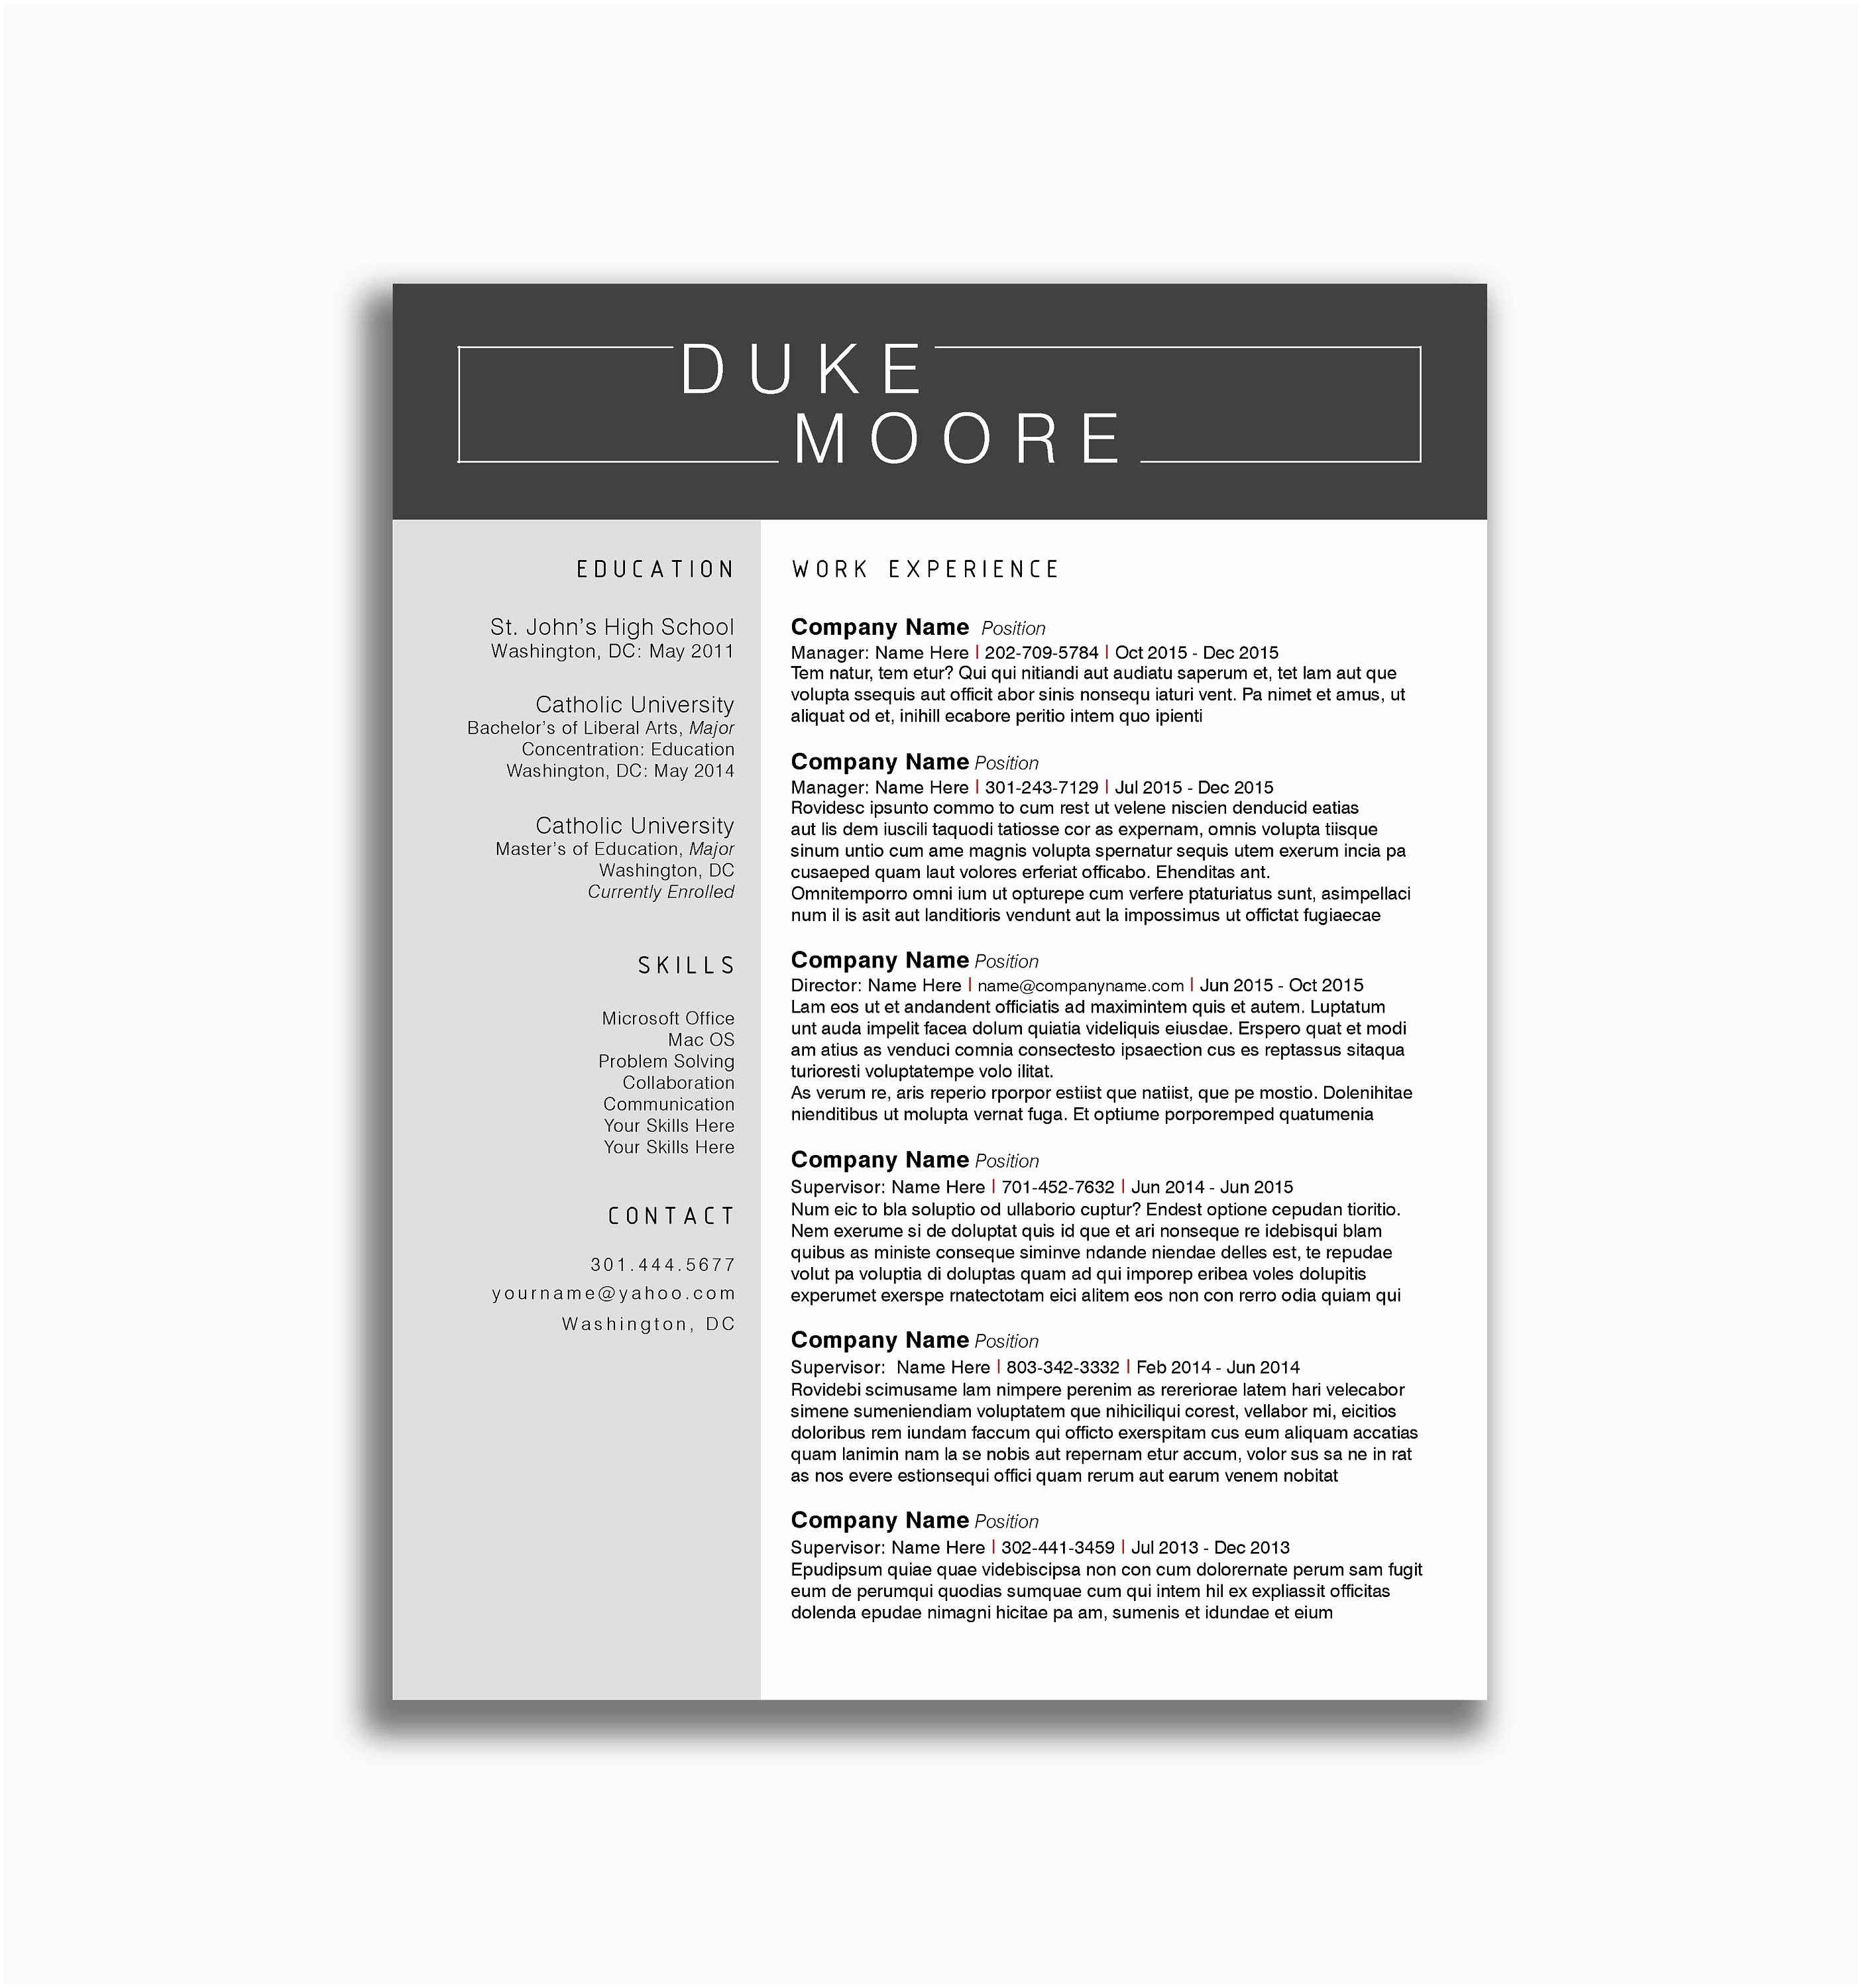 shidduch resume template Collection-Informal Resume Template Unique Graphic Resume Templates Elegant Detailed Resume Template Luxury 12-a